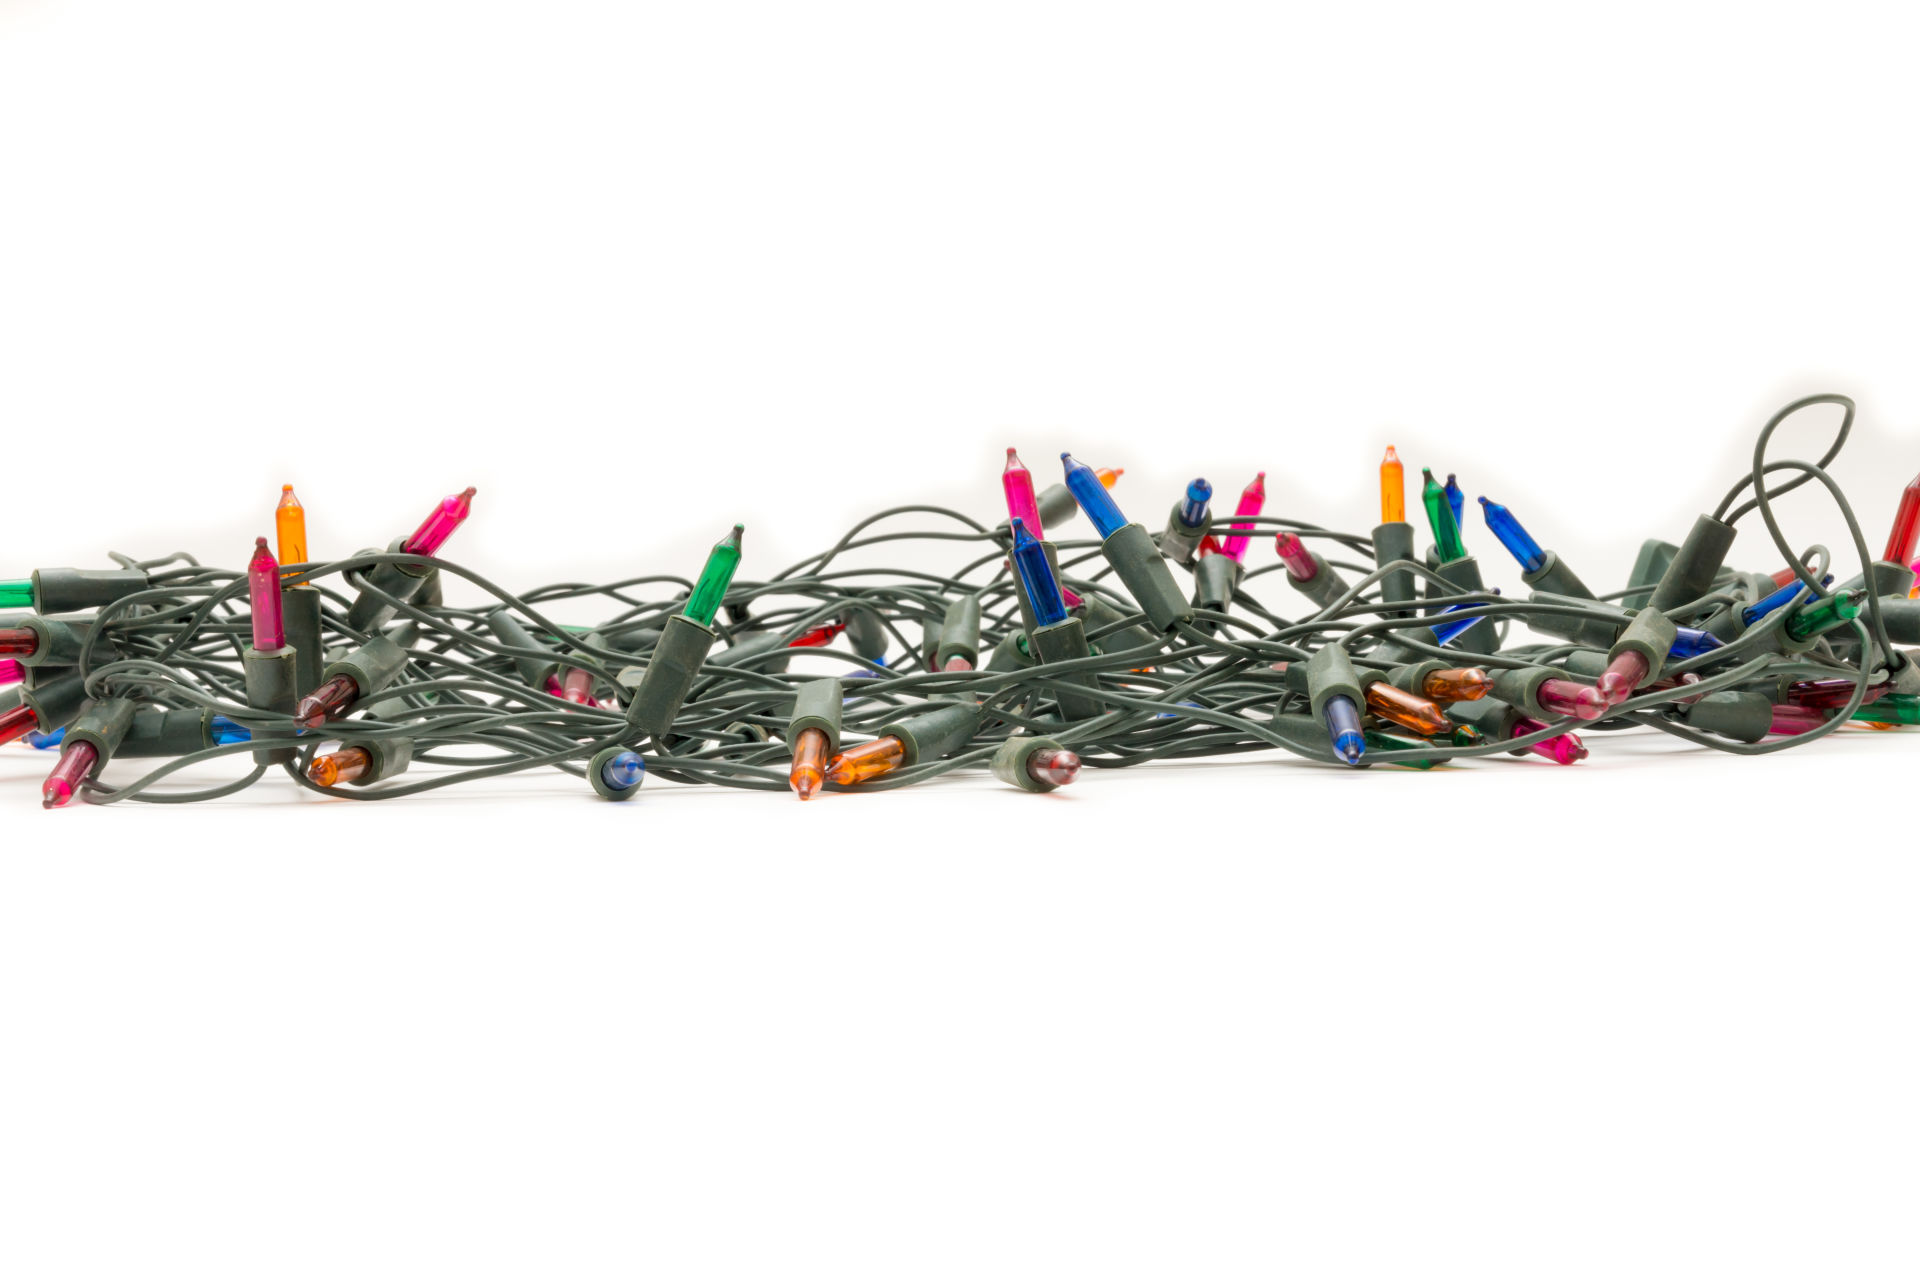 We're Collecting Old Holiday Lights For Donation or Recycling